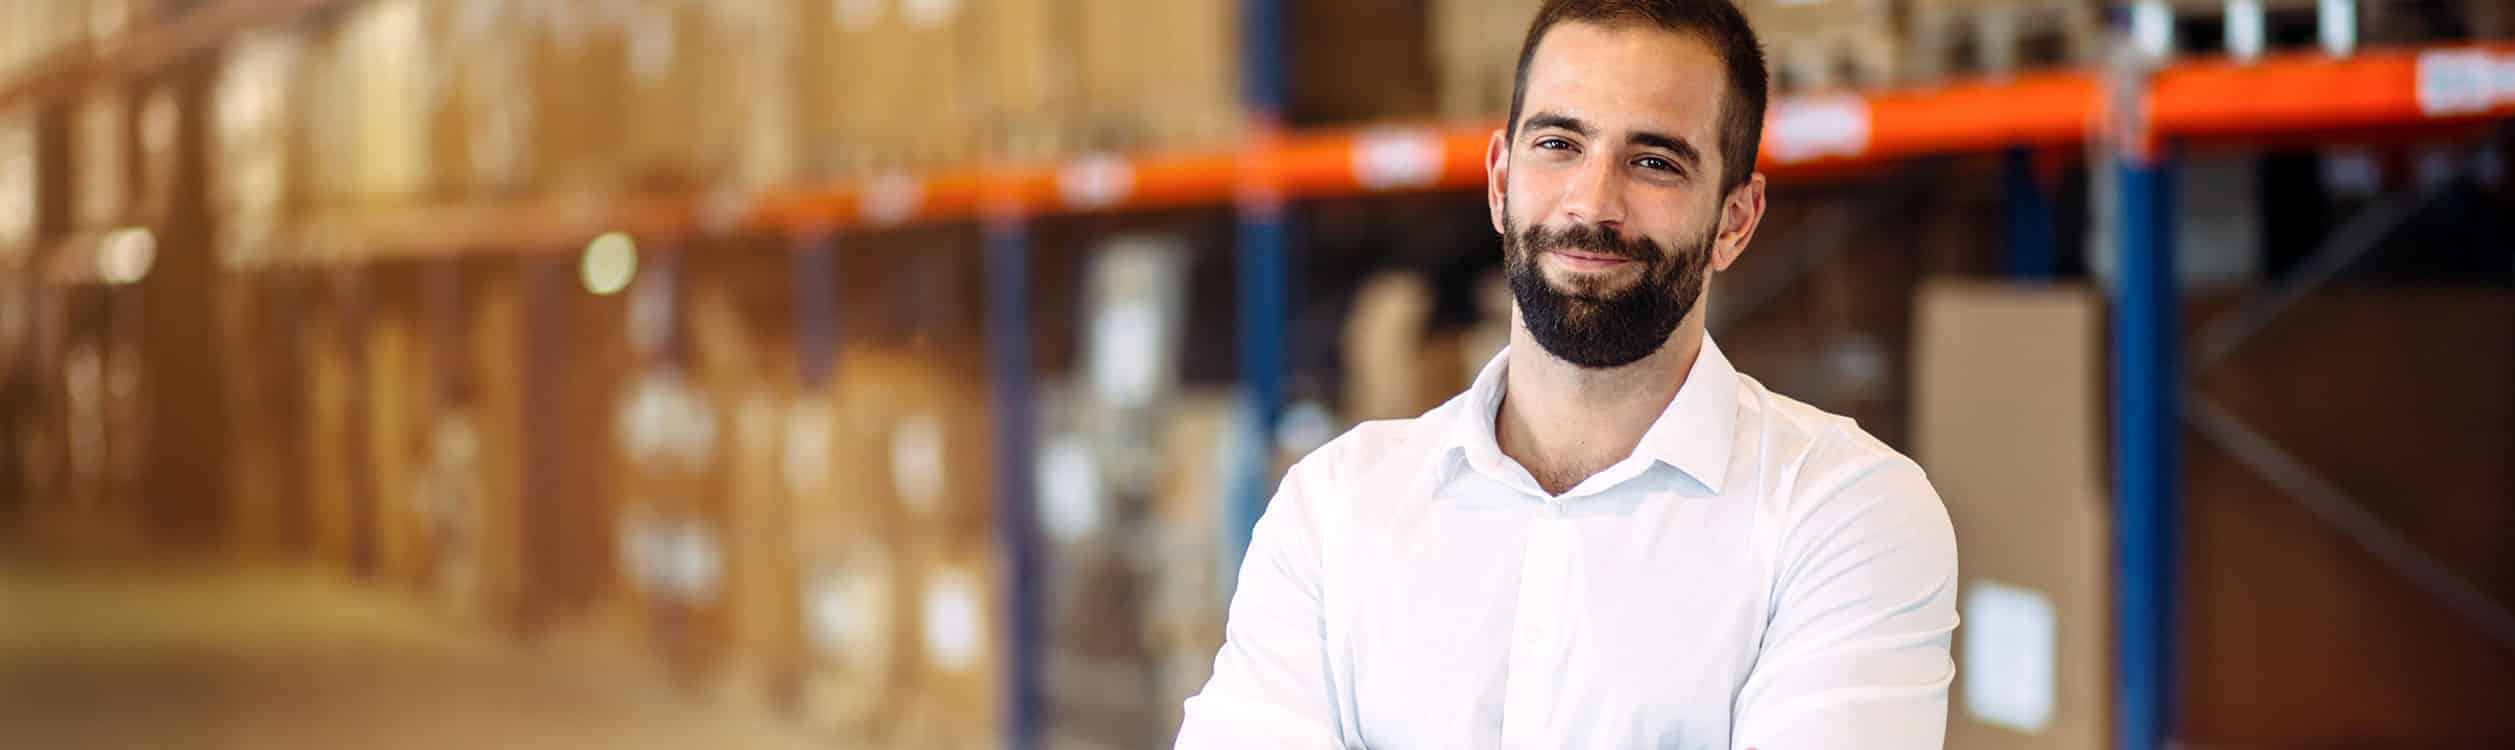 A man stands in a warehouse with his arms crossed and laughs into the camera